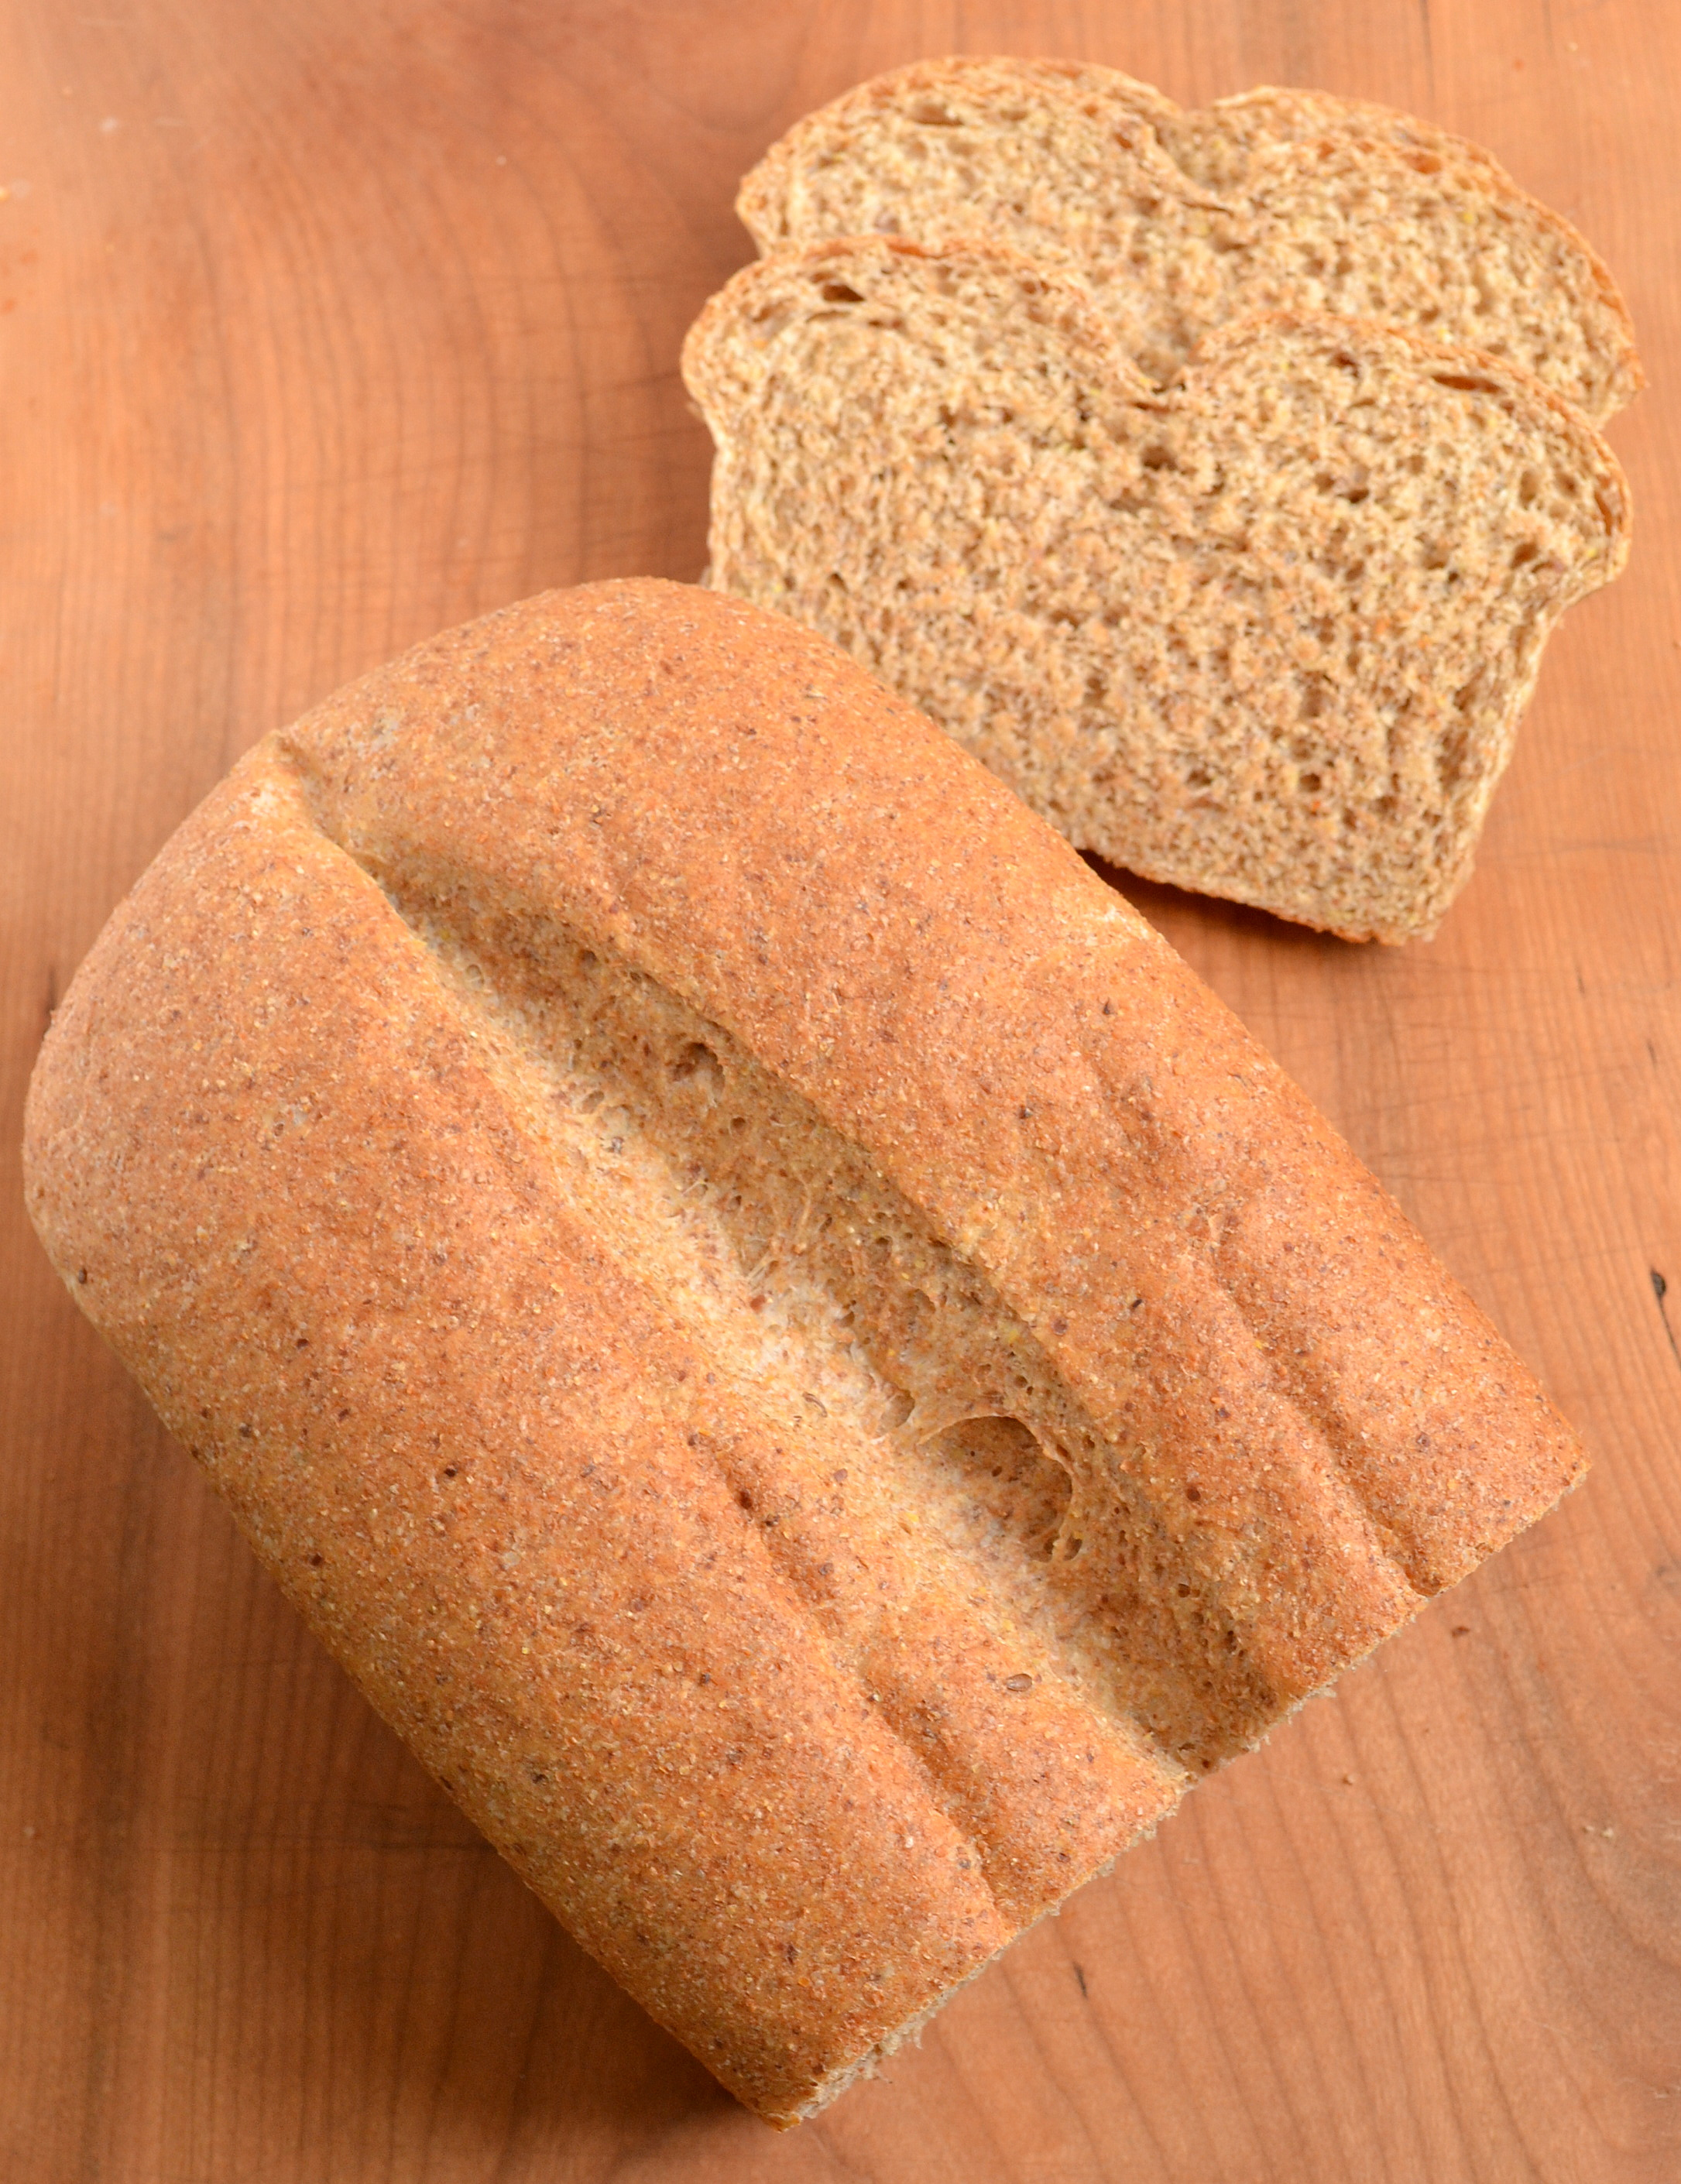 100% Whole Wheat Honey Bread Recipe — Dishmaps